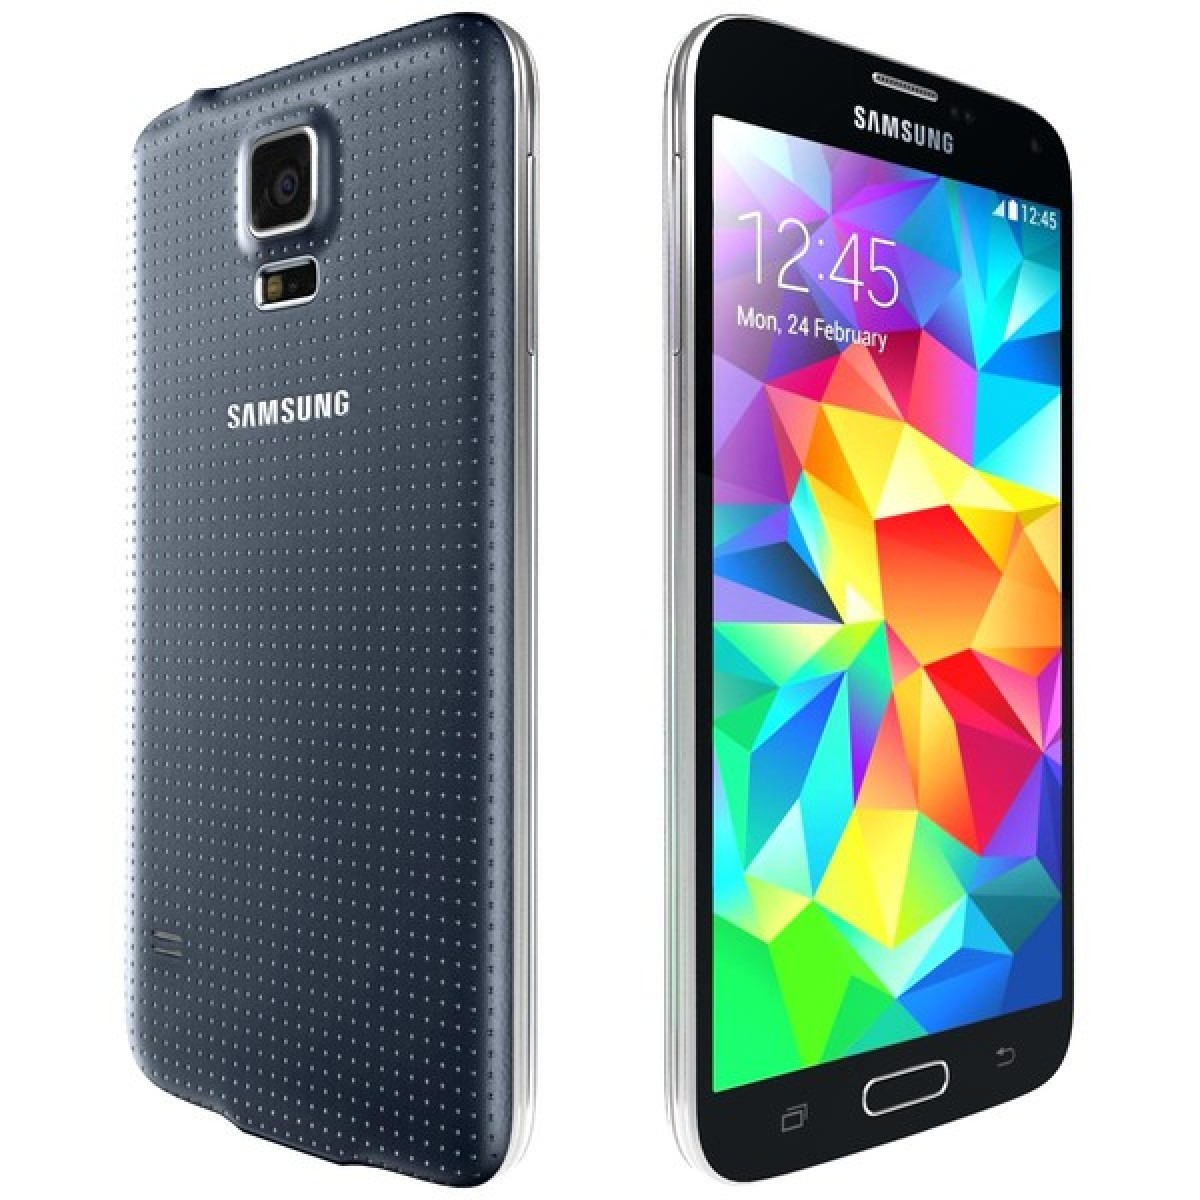 samsung galaxy s5 16gb in charcoal black 4g lte android phone for sprint pcs good condition. Black Bedroom Furniture Sets. Home Design Ideas